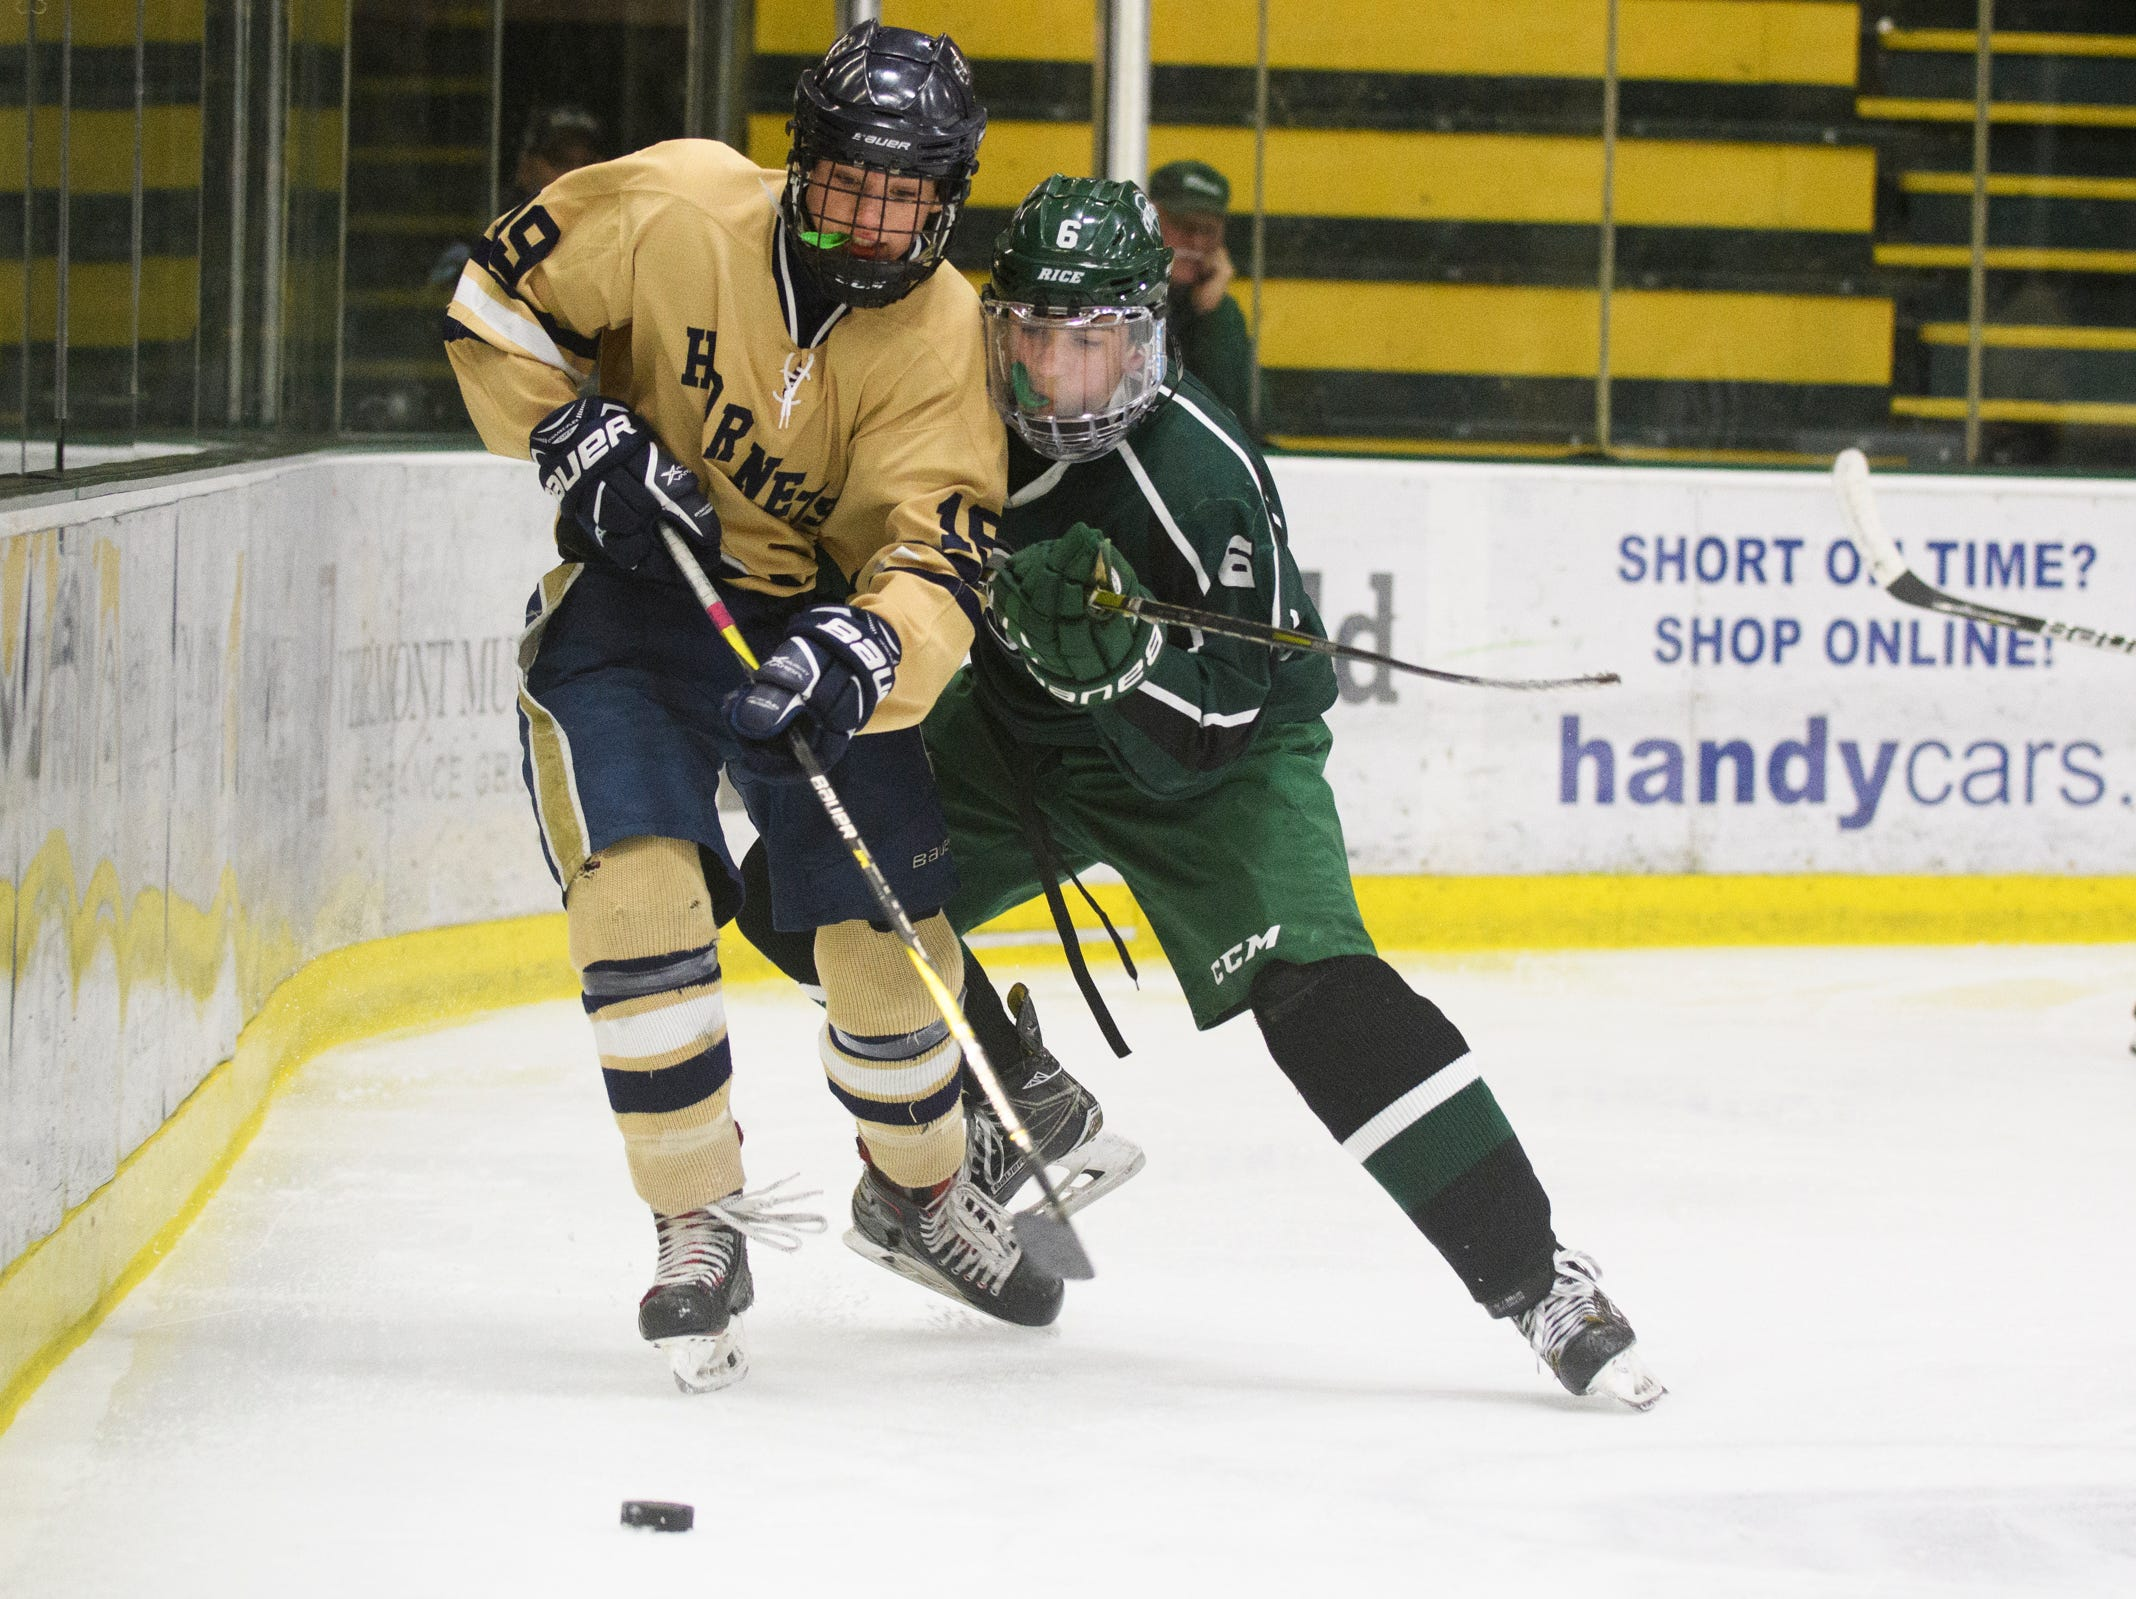 Rice's Jackman Hickey (6) battles for the puck with Essex's Maxwell Line (19) during the DI boys hockey championship game between the Rice Green Knights and the Essex Hornets at Gutterson Field House on Wednesday night March 13, 2019 in Burlington, Vermont.